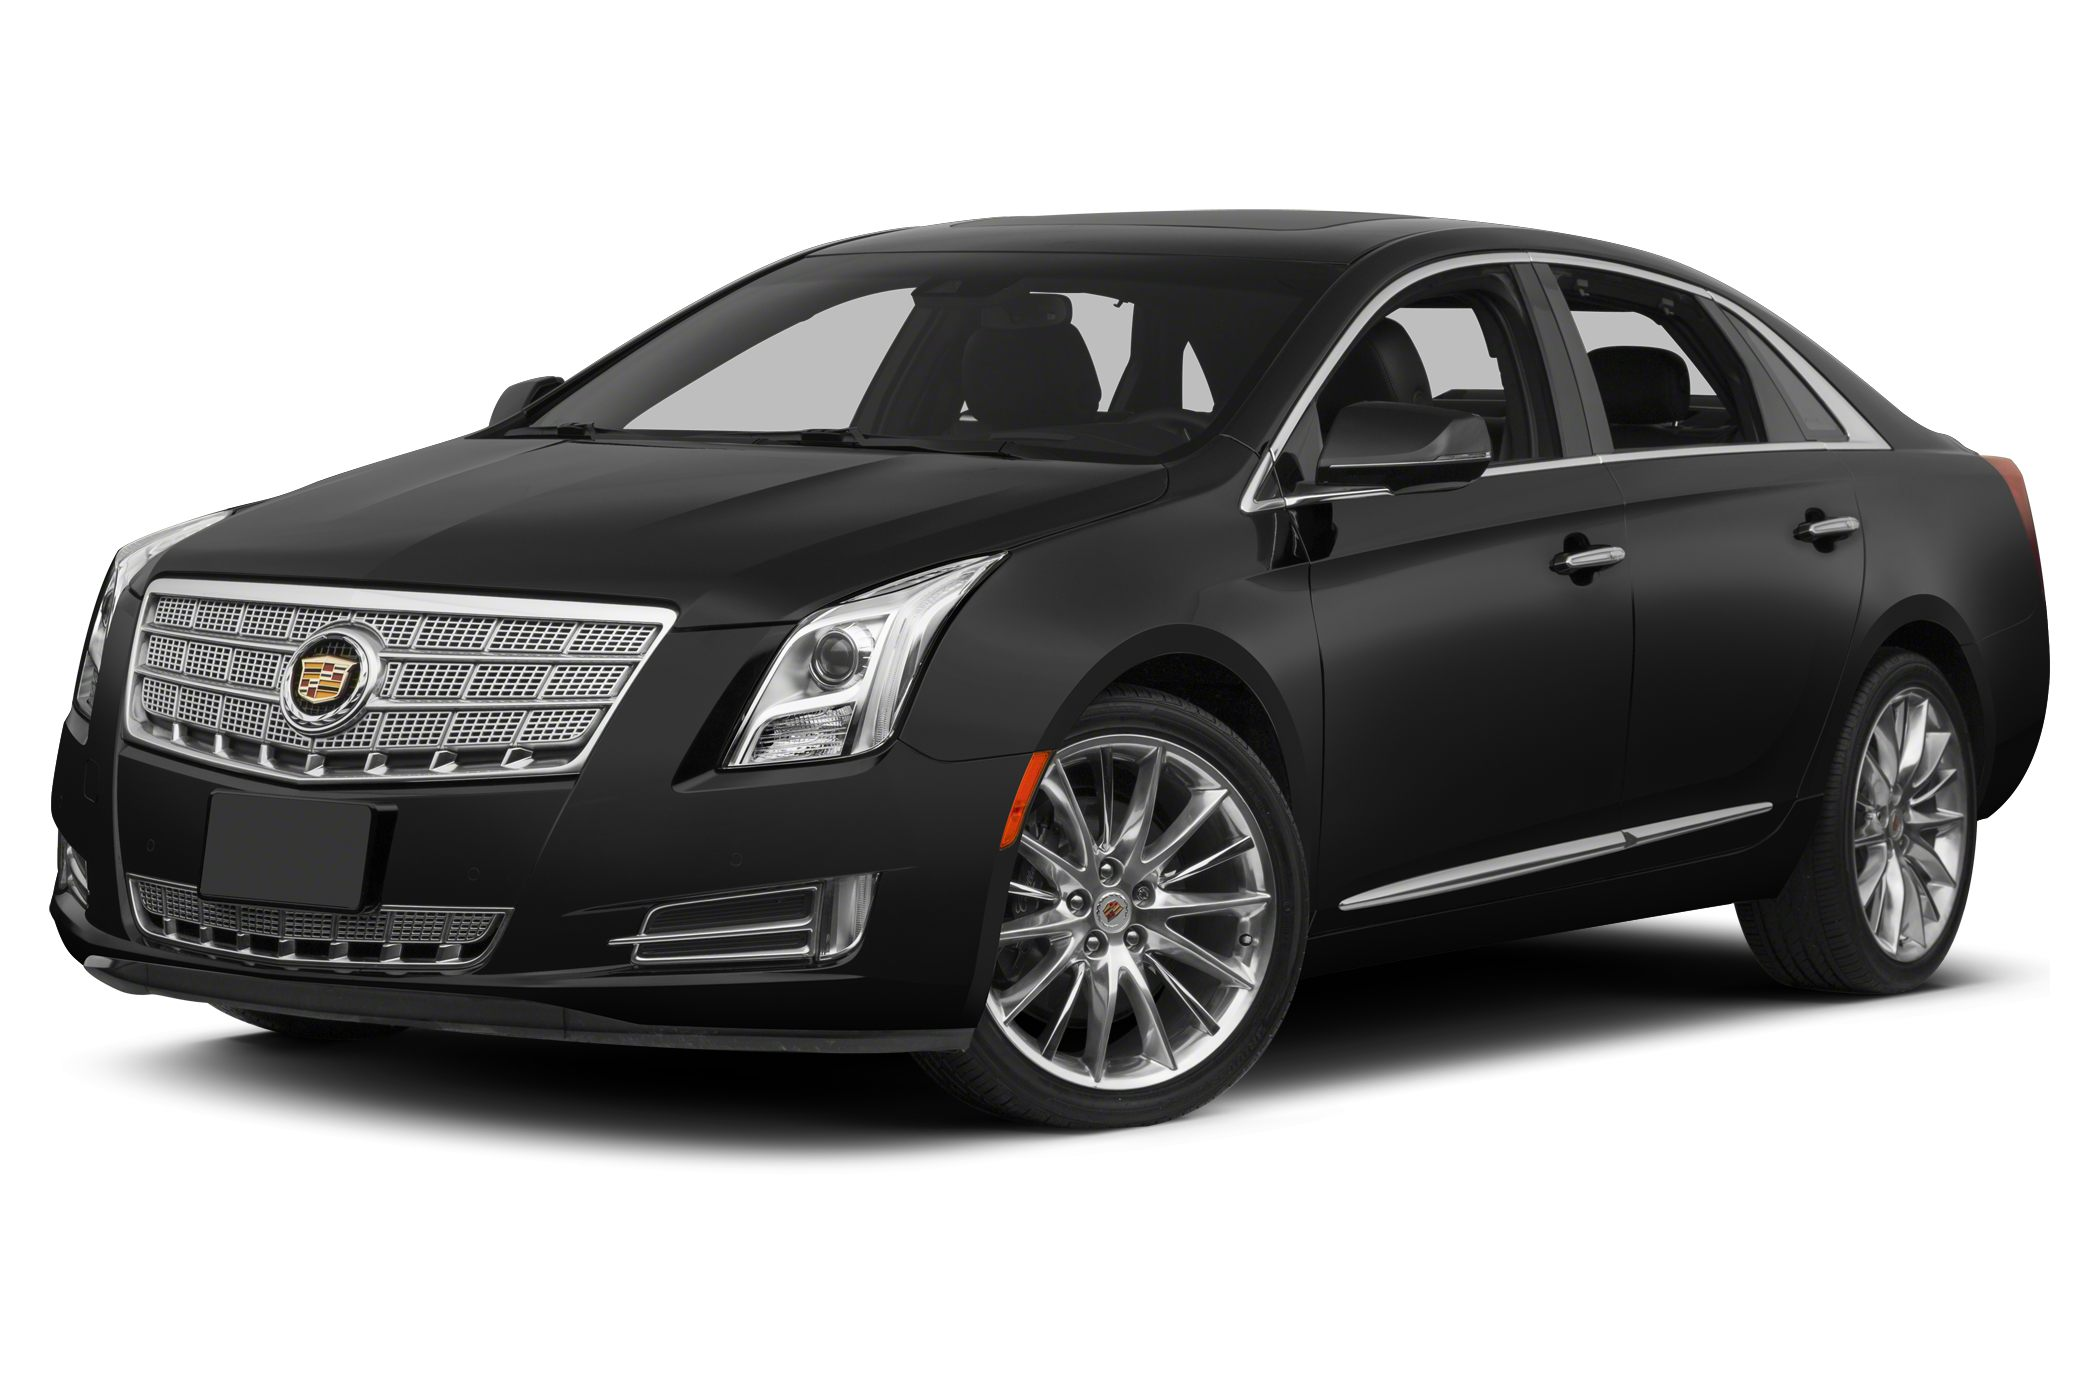 2014 Cadillac XTS Platinum Sedan for sale in Jonesboro for $63,810 with 0 miles.